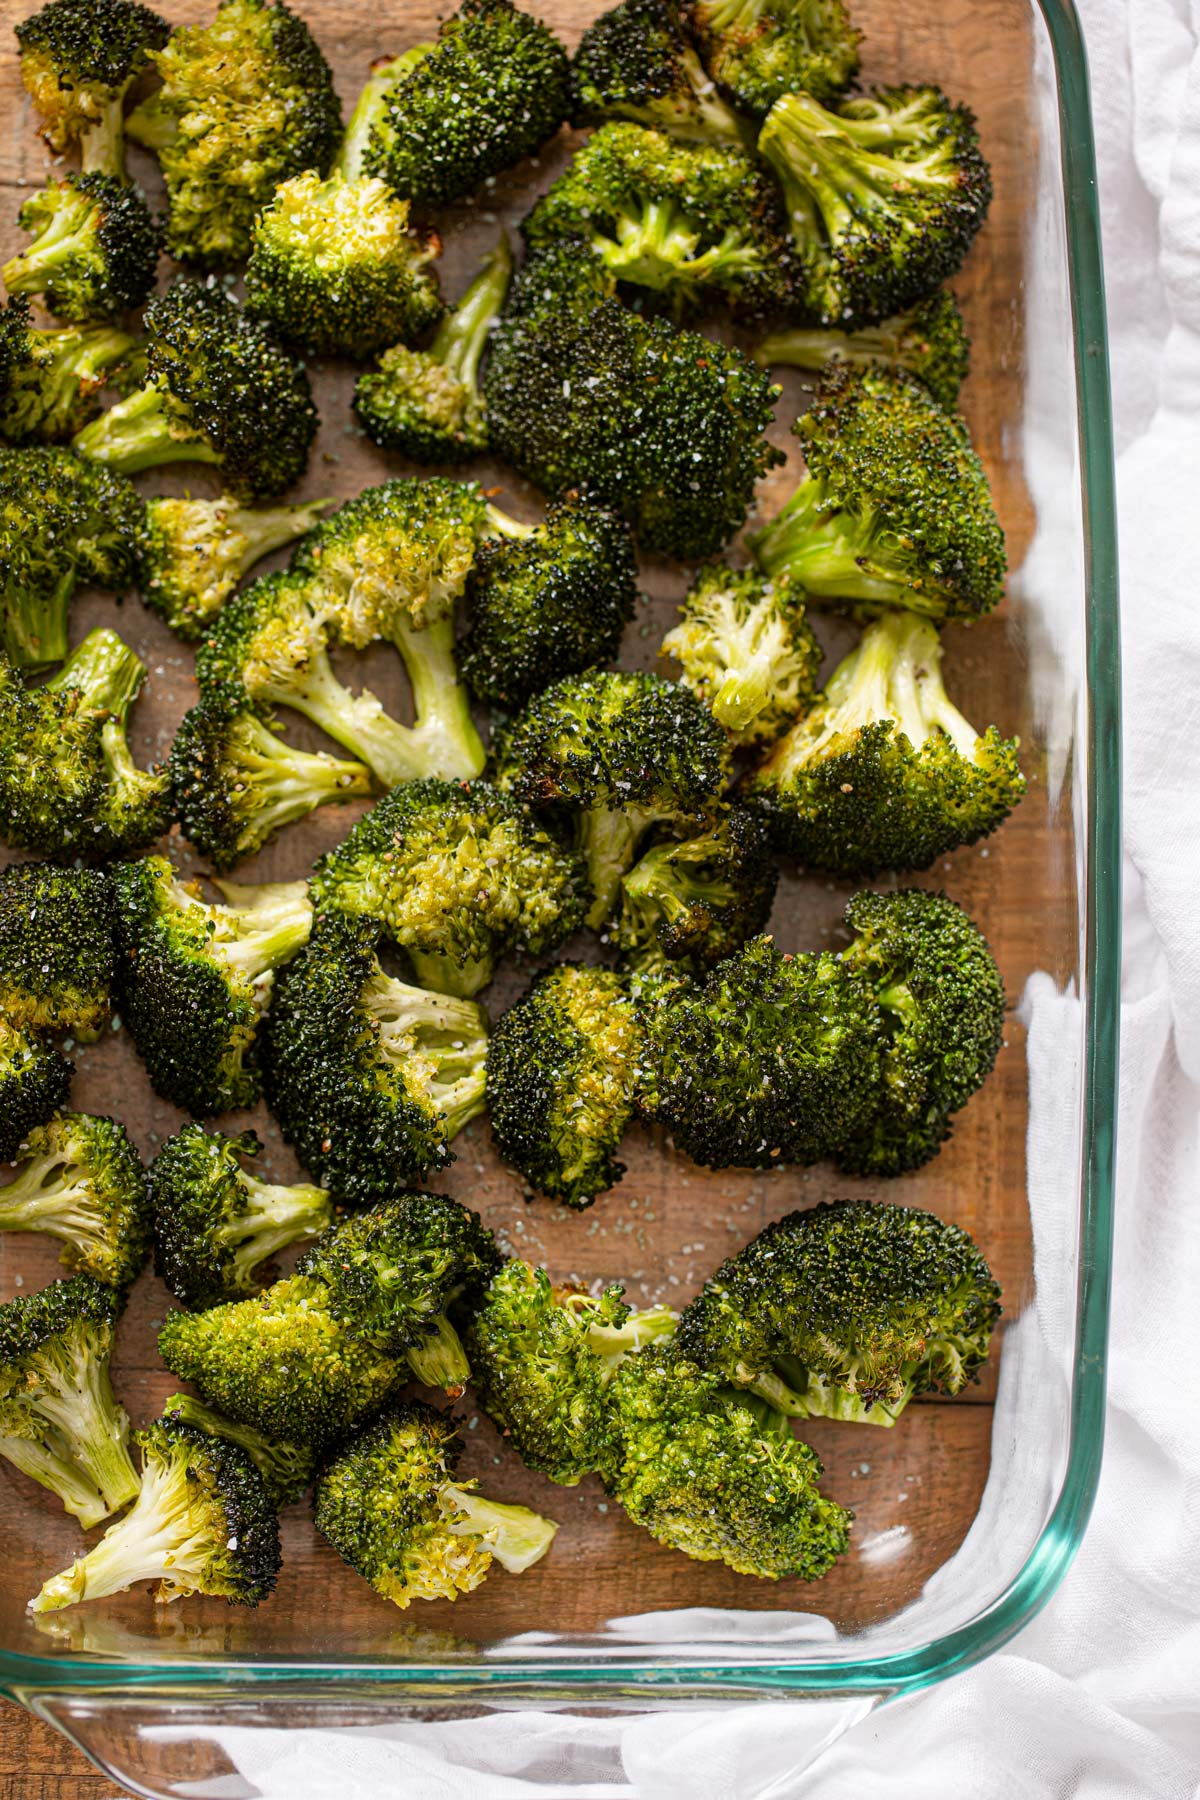 Roasted Broccoli in glass baking dish